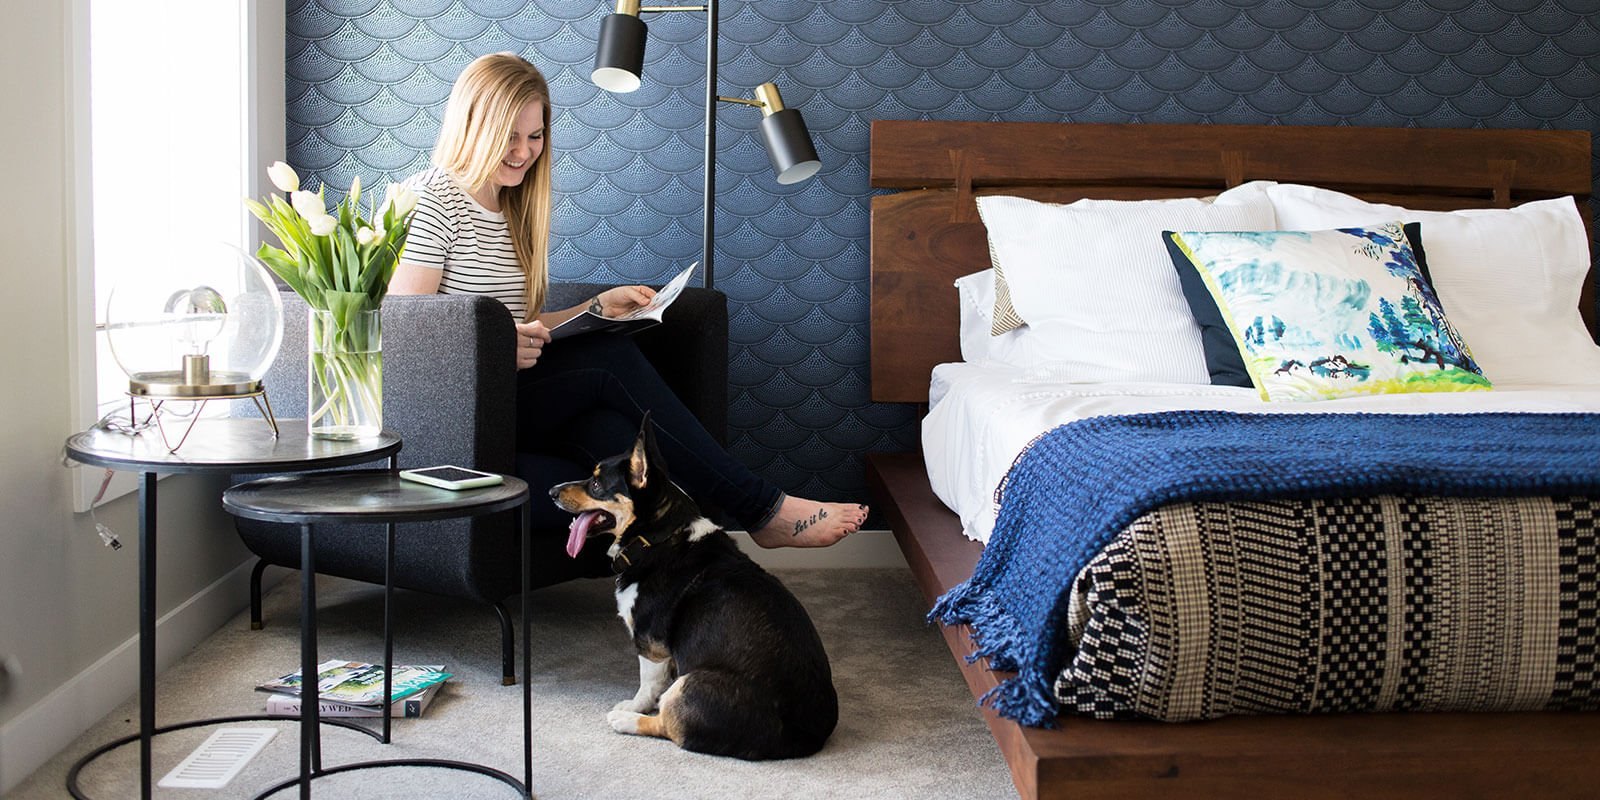 Woman reading in bedroom with dog